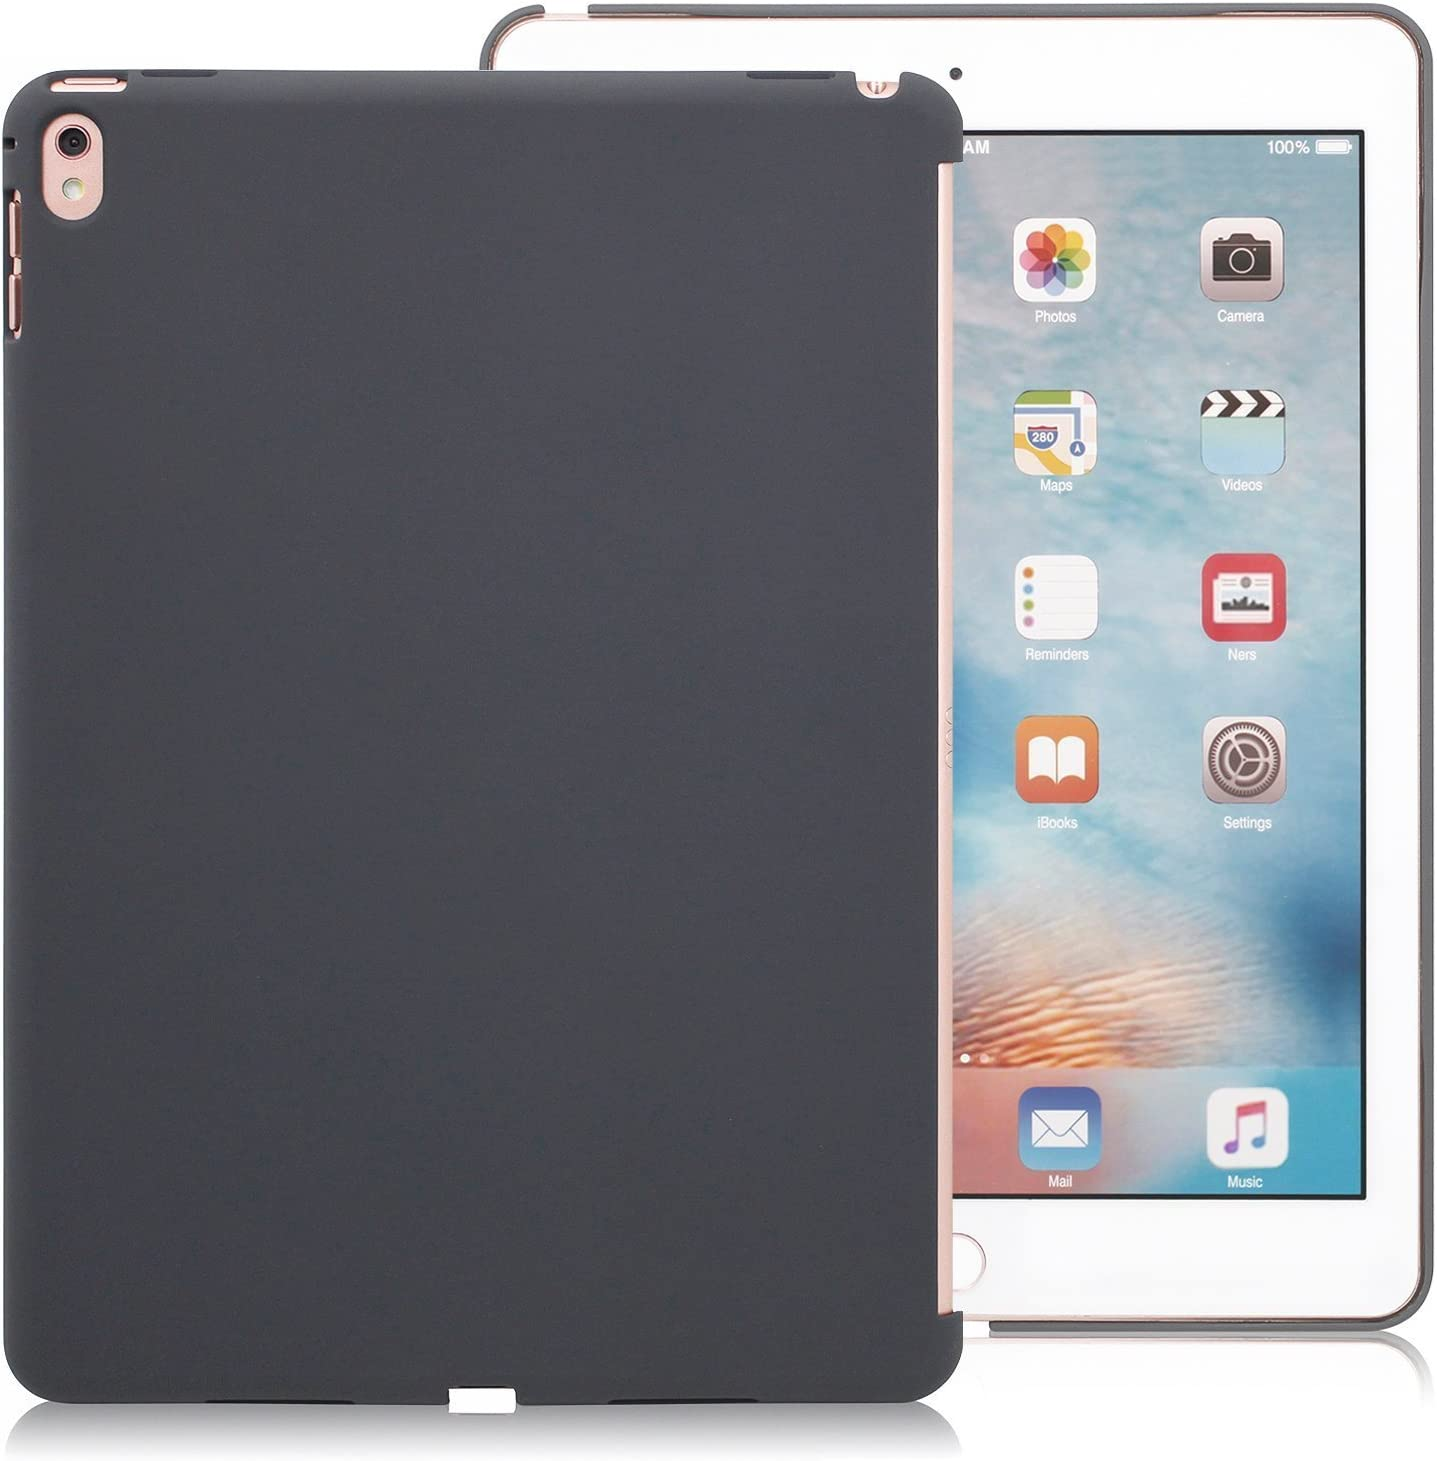 iPad Pro 9.7 Inch Charcoal GrayBack Case - Companion Cover - Perfect match for smart keyboard.